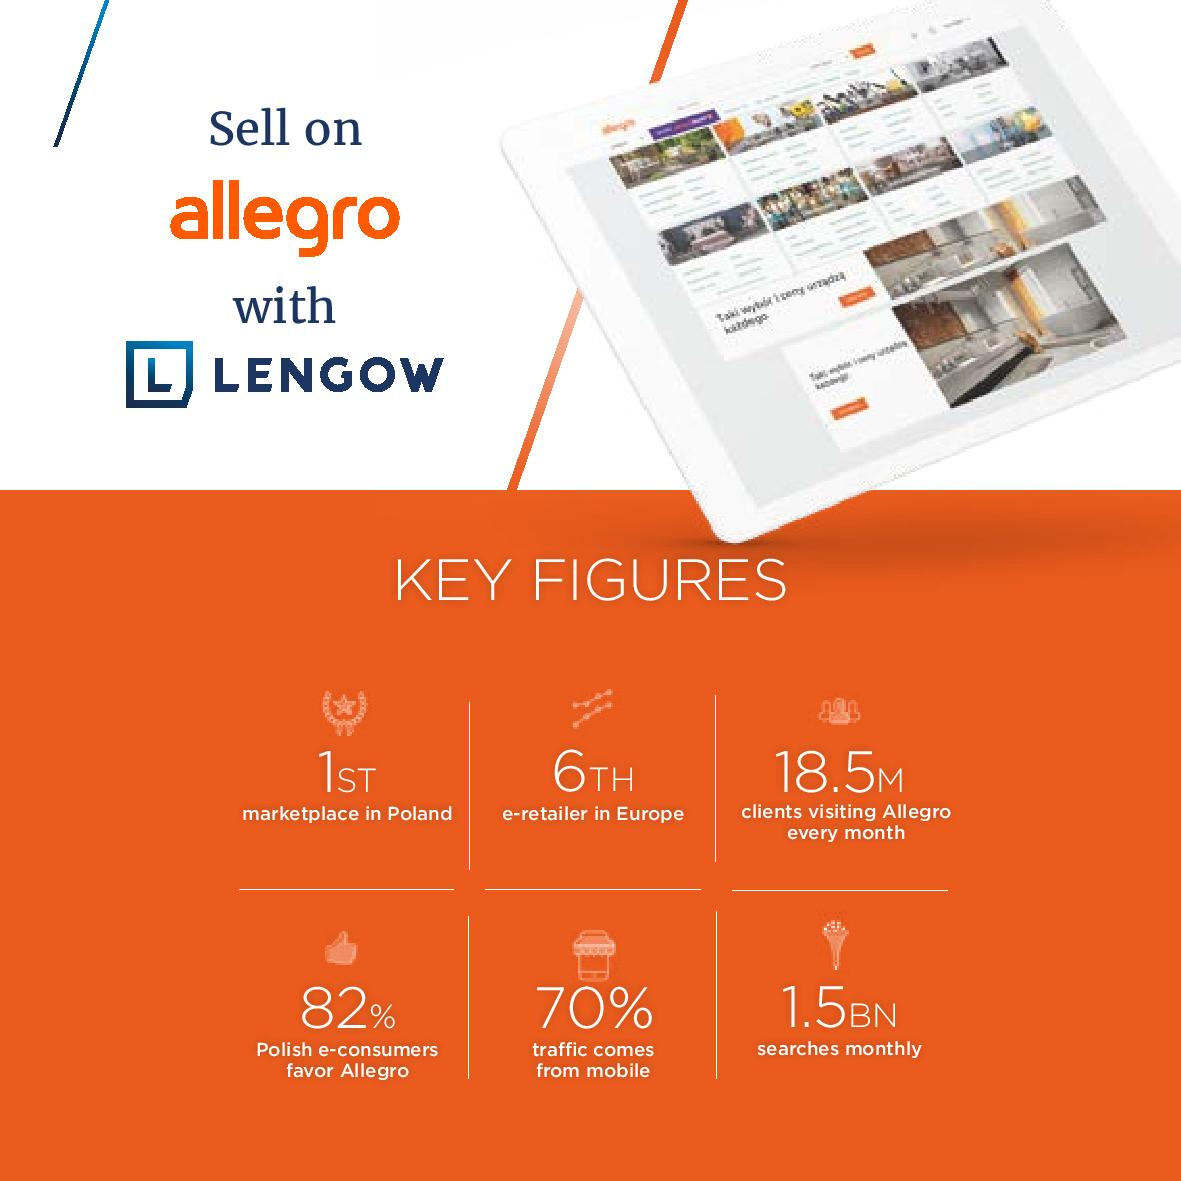 Sell on Allegro